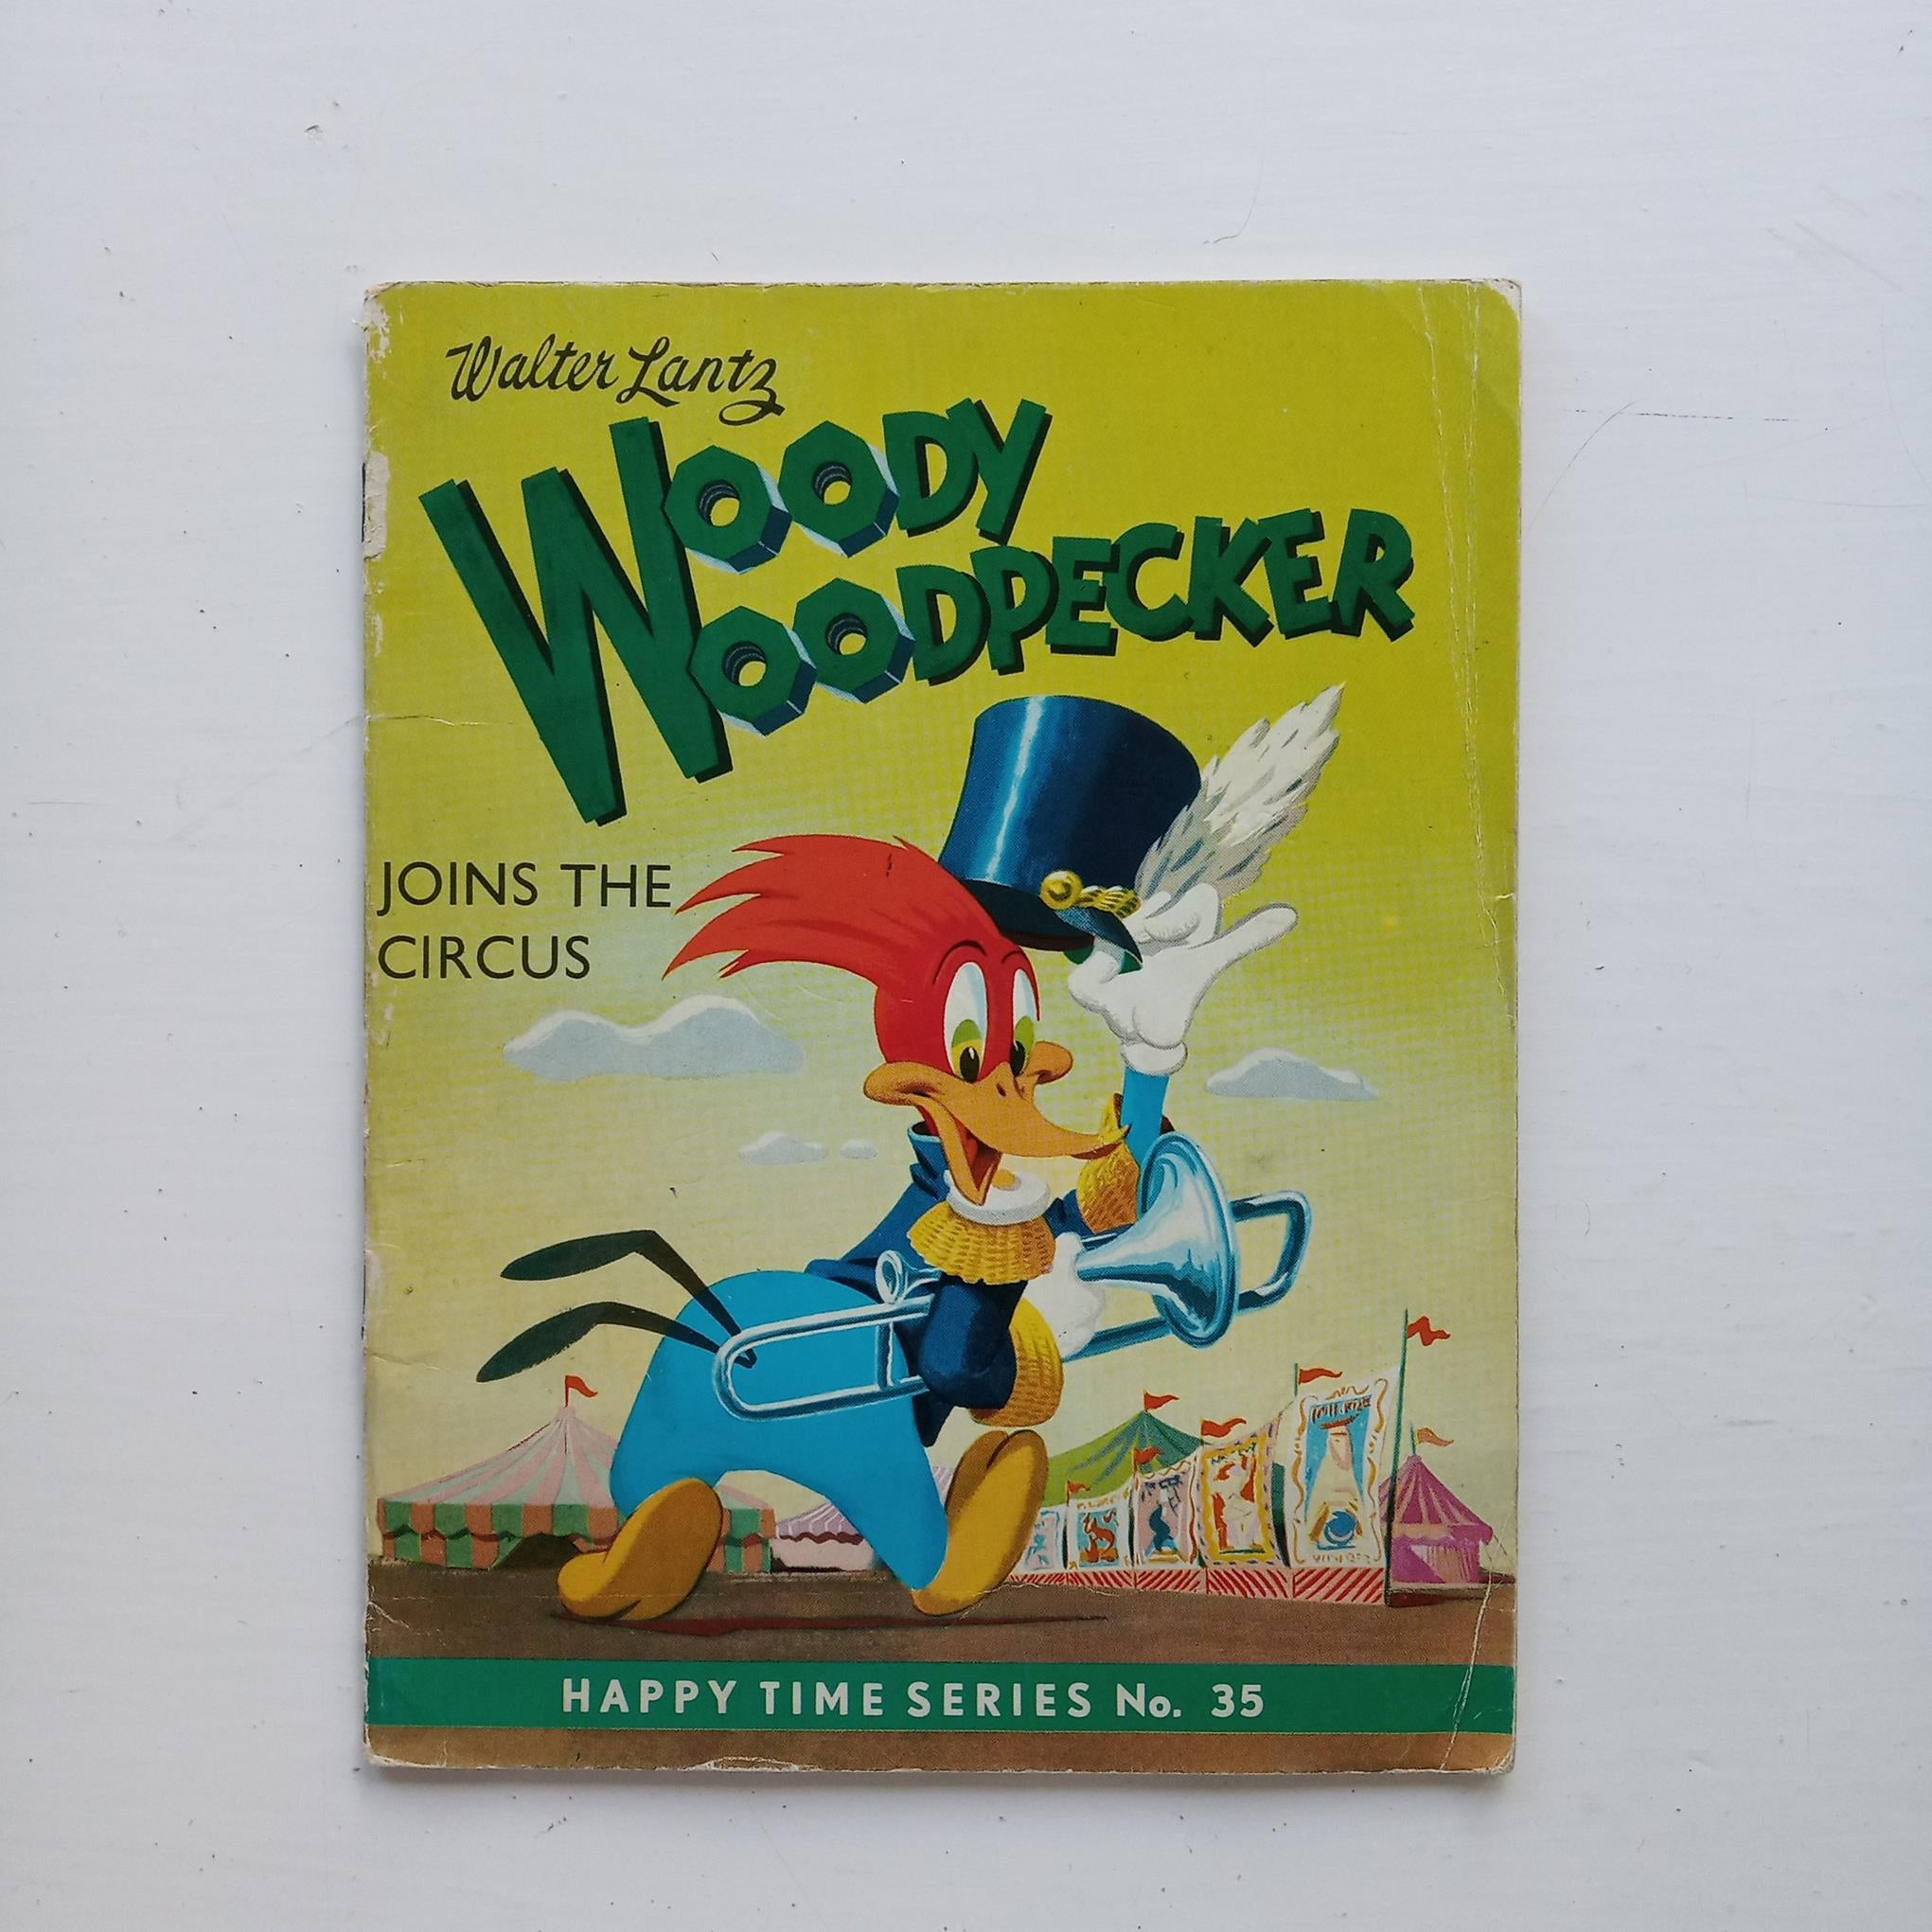 Woody Woodpecker Joins the Circus by Walter Lantz